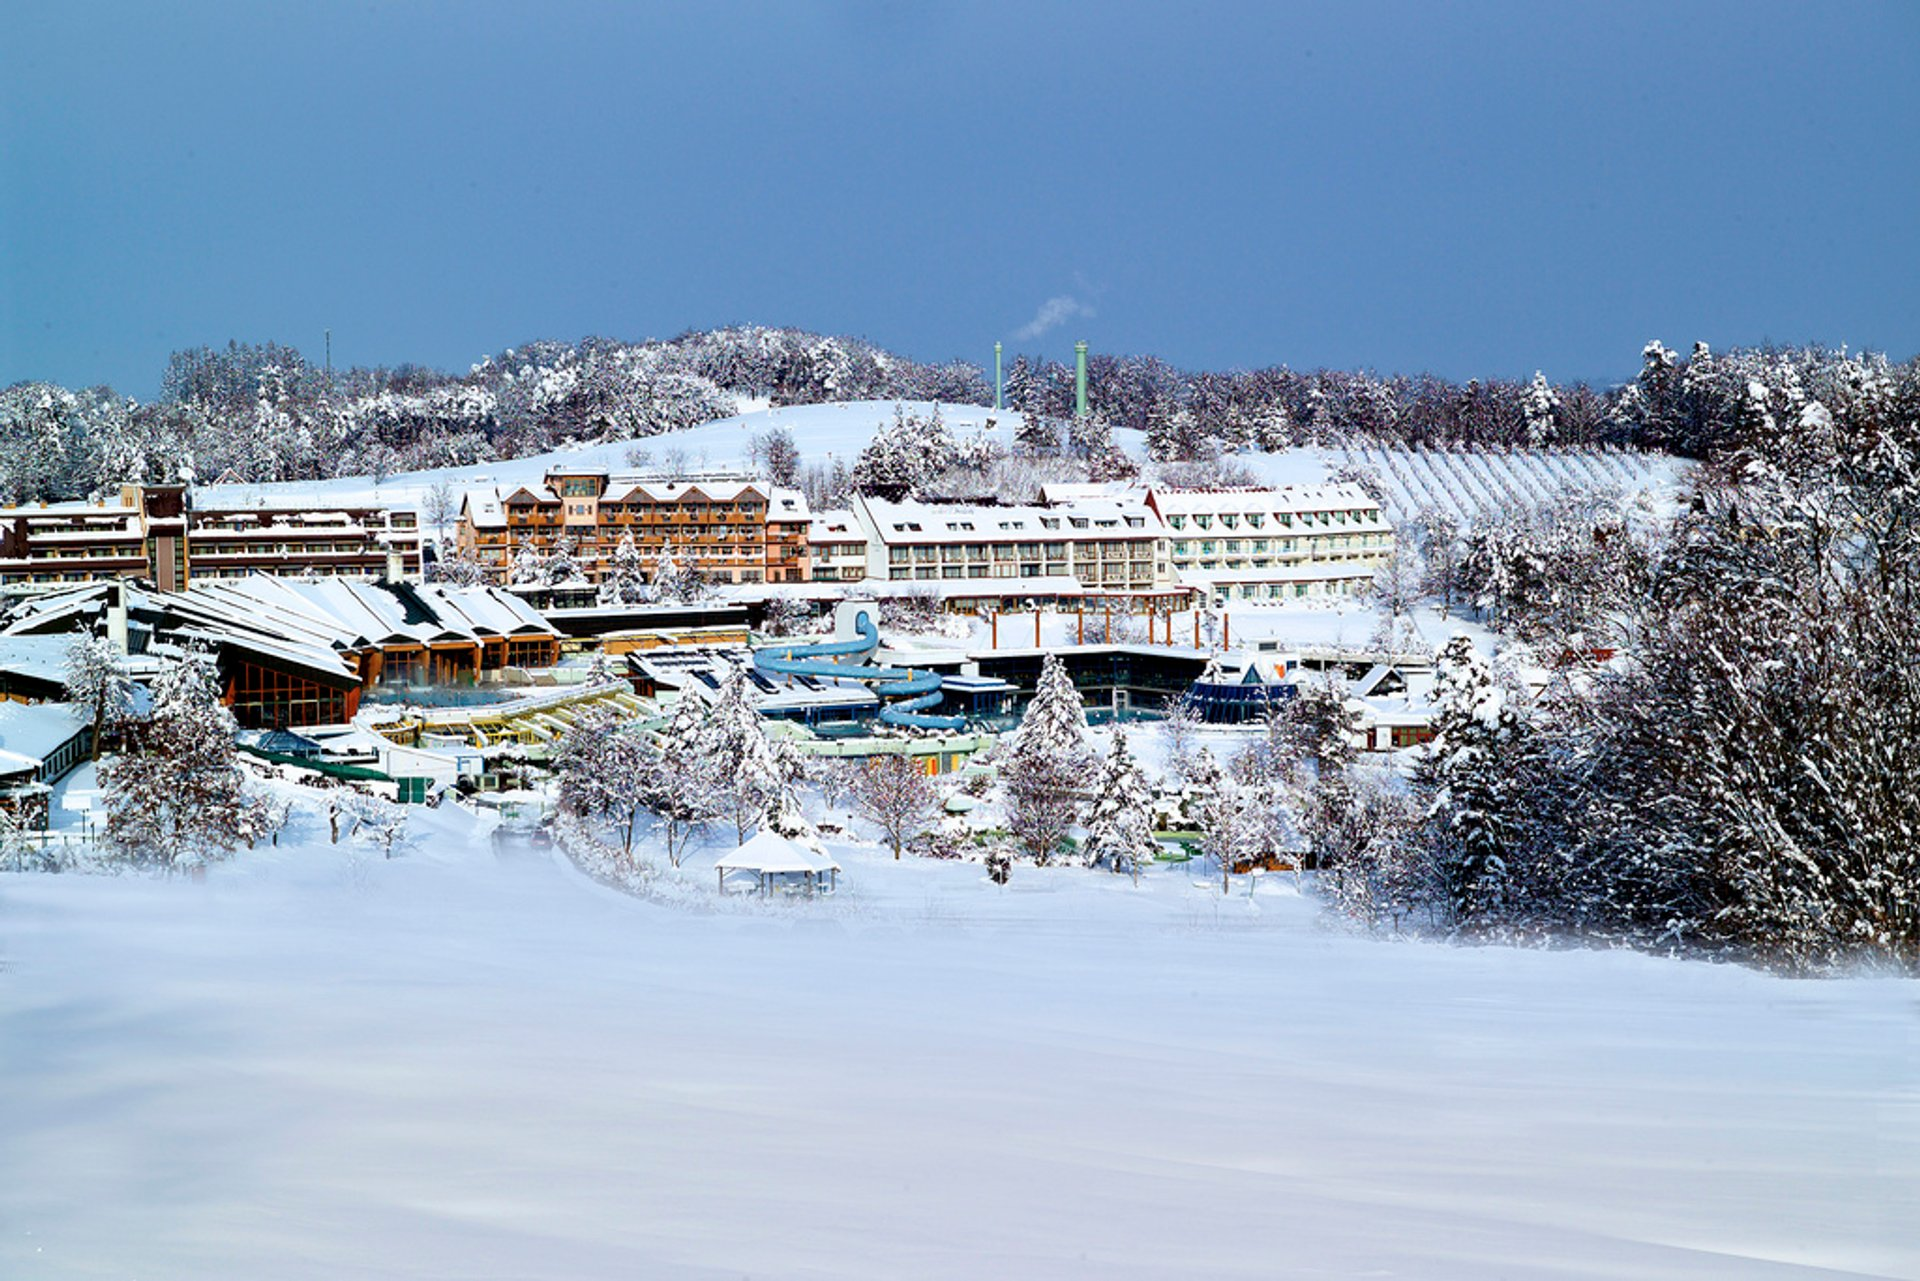 Therme Loipersdorf in winter 2019